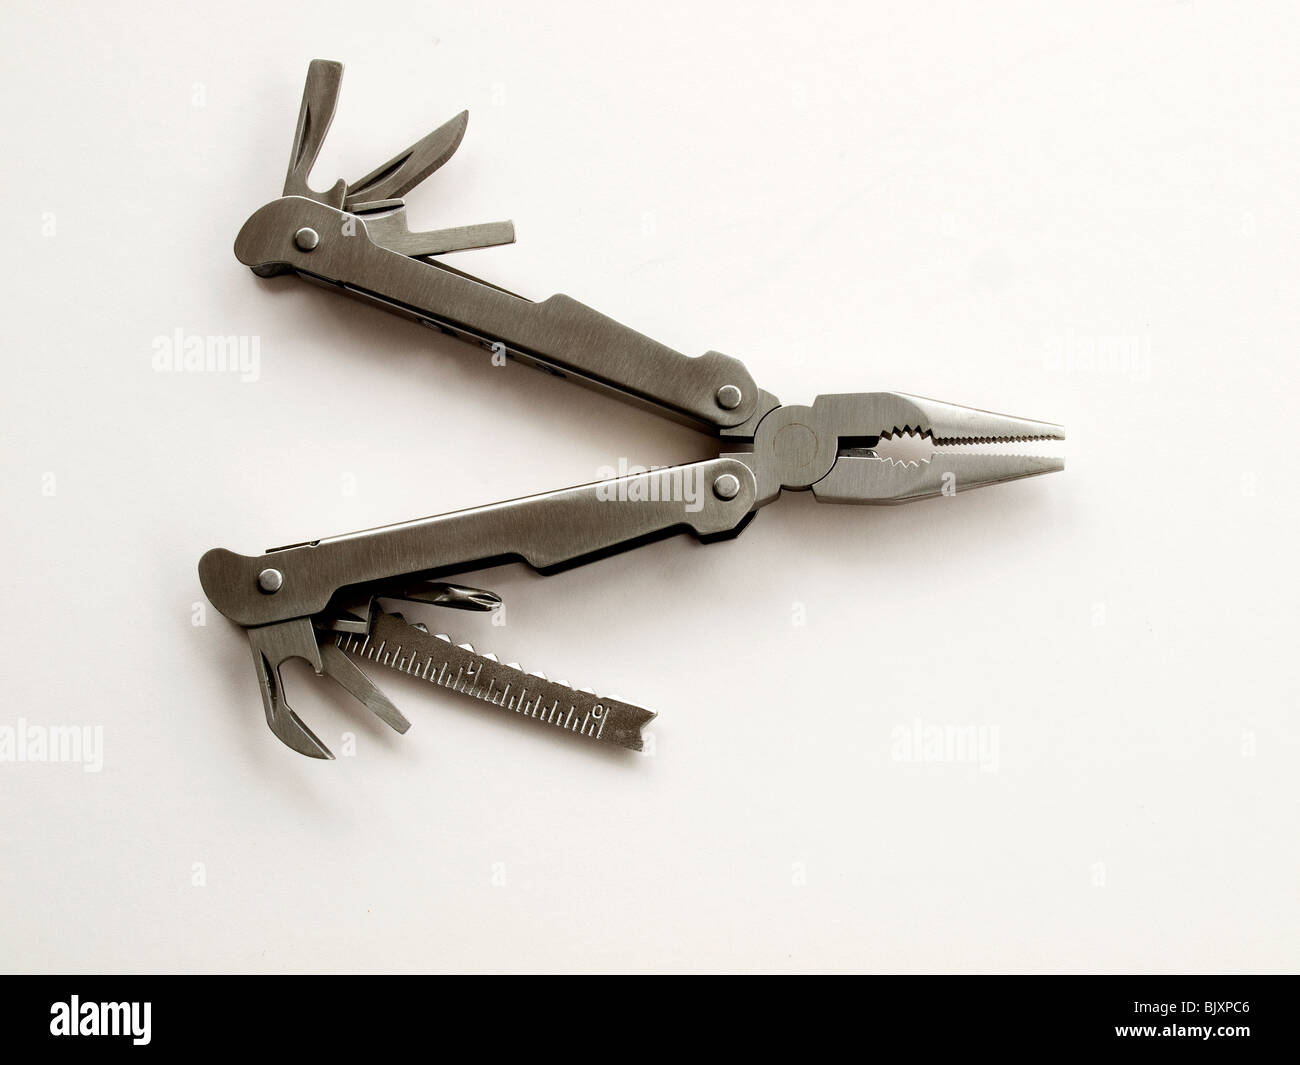 A multi--purpose hand tool on a white background - Stock Image